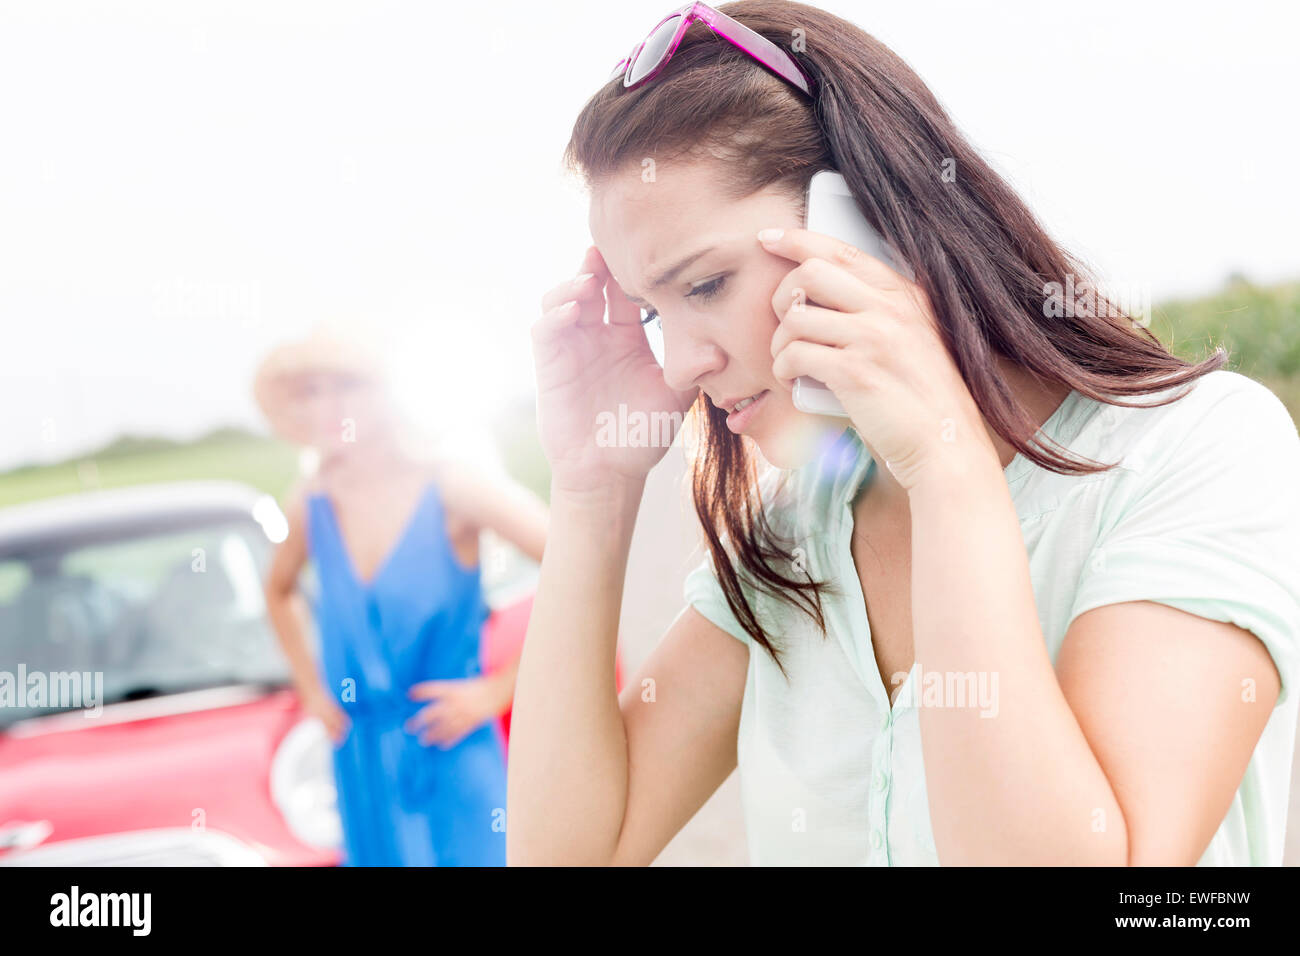 Worried woman using mobile phone while friend standing by broken down car on sunny day - Stock Image